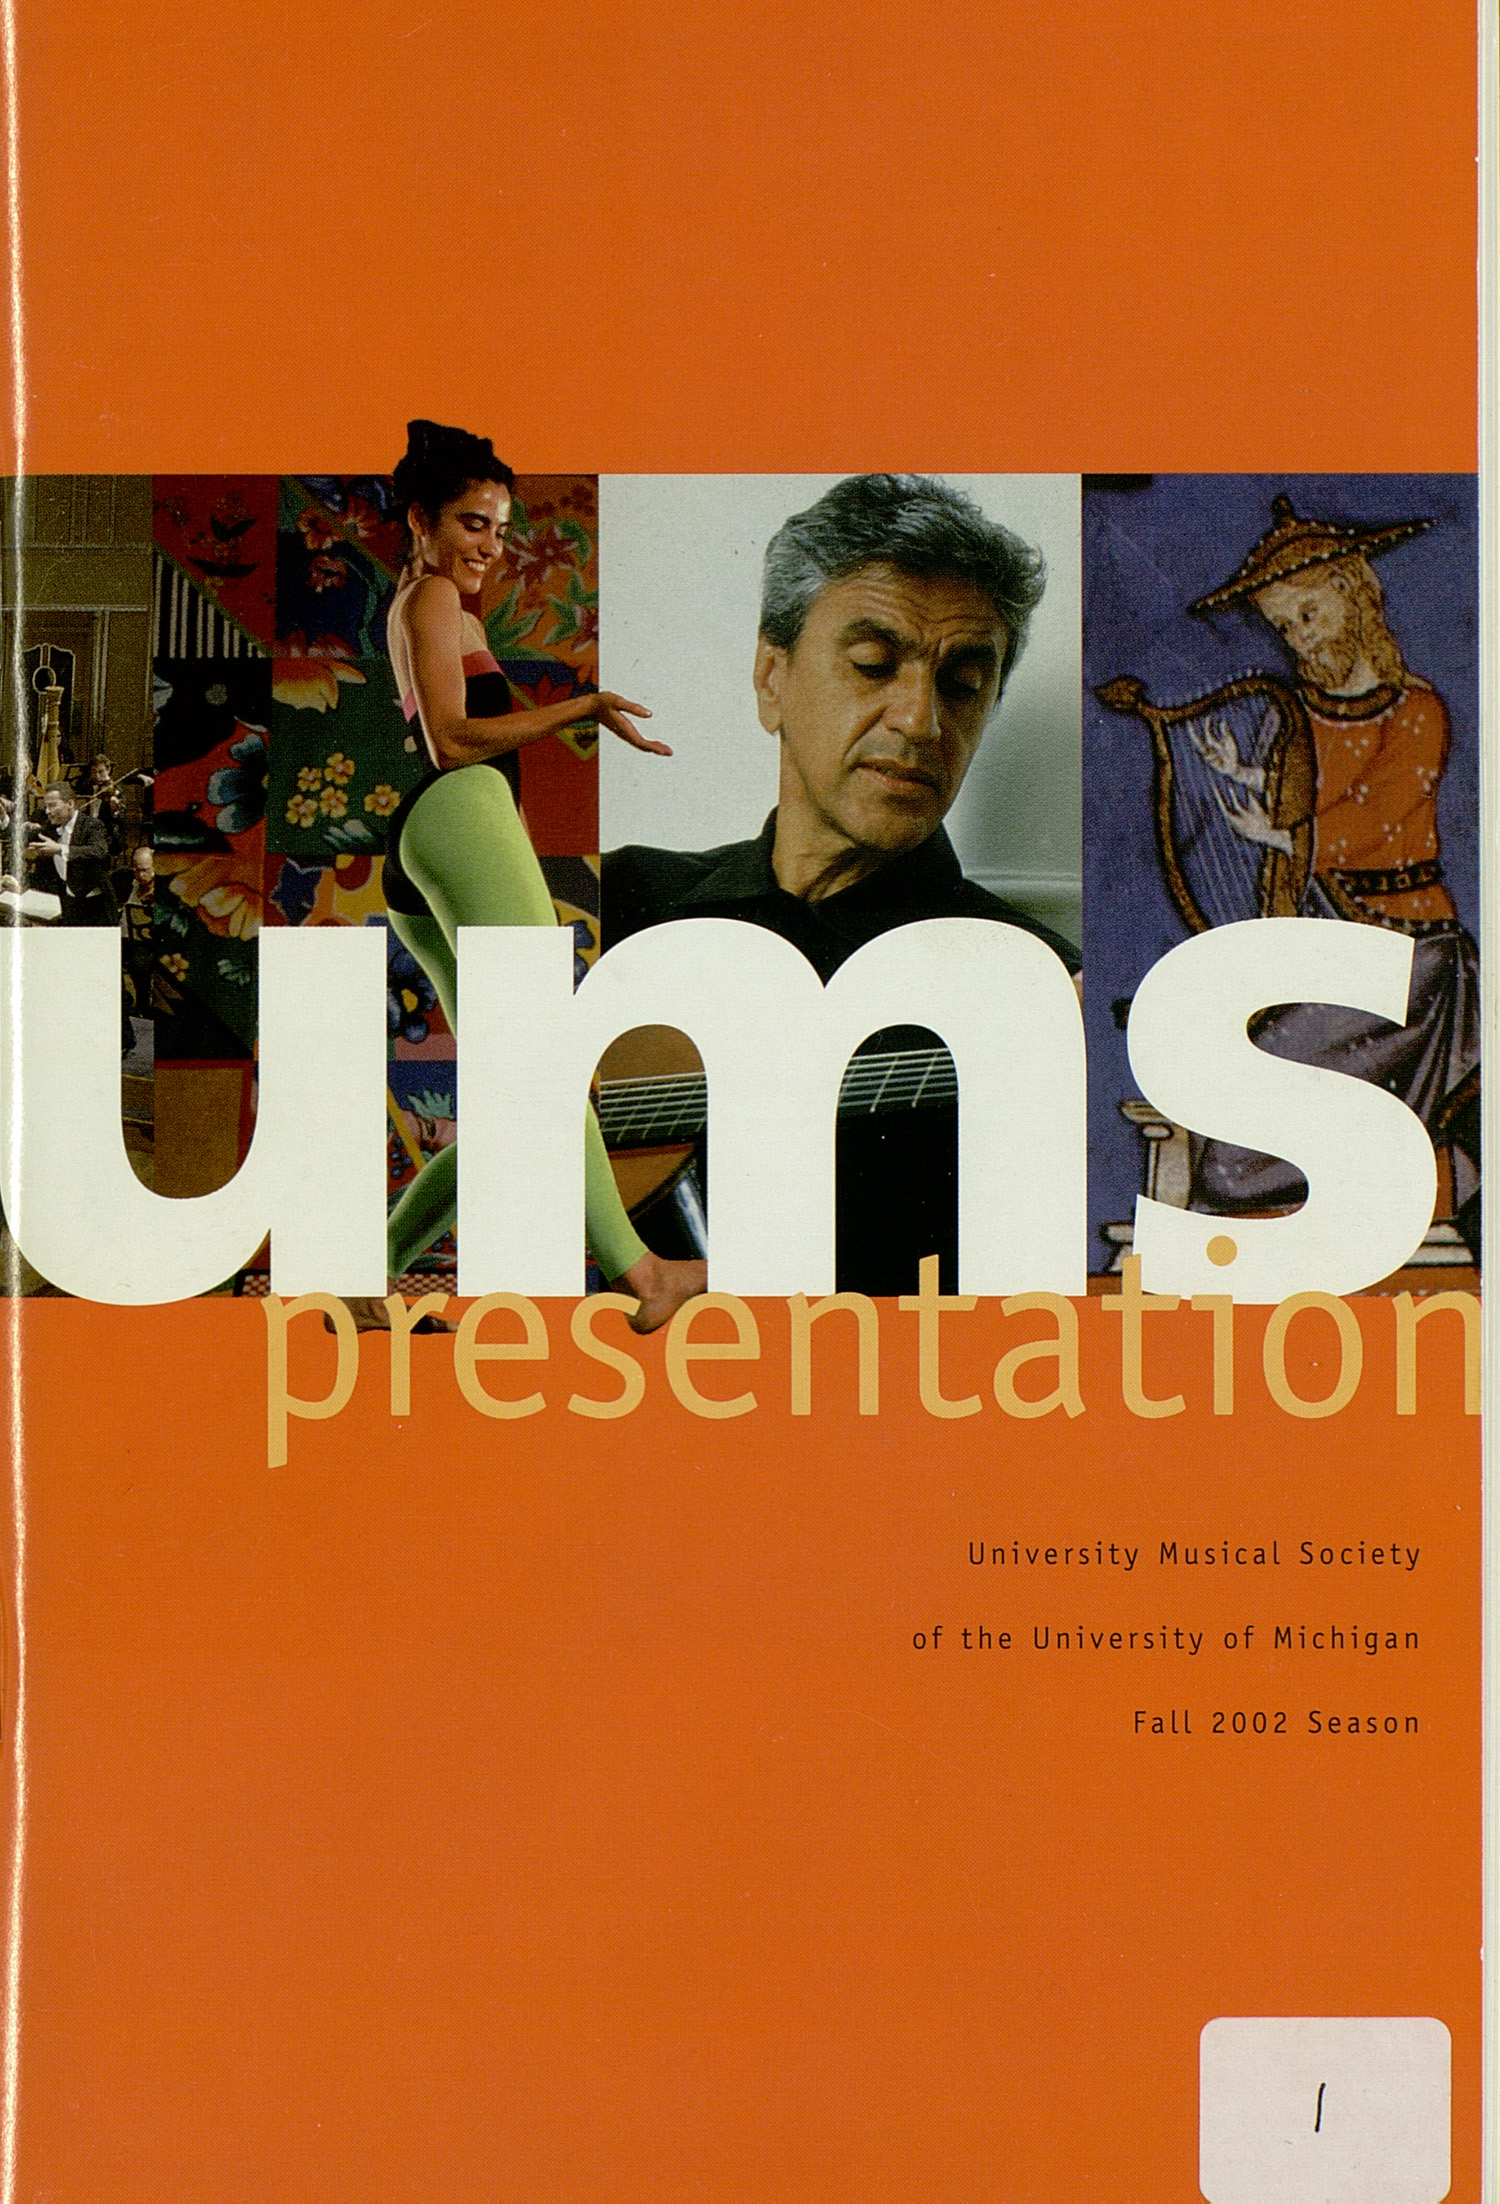 UMS Concert Program, Friday Sep. 20 To Oct. 09: University Musical Society: Fall 2002 - Friday Sep. 20 To Oct. 09 --  image